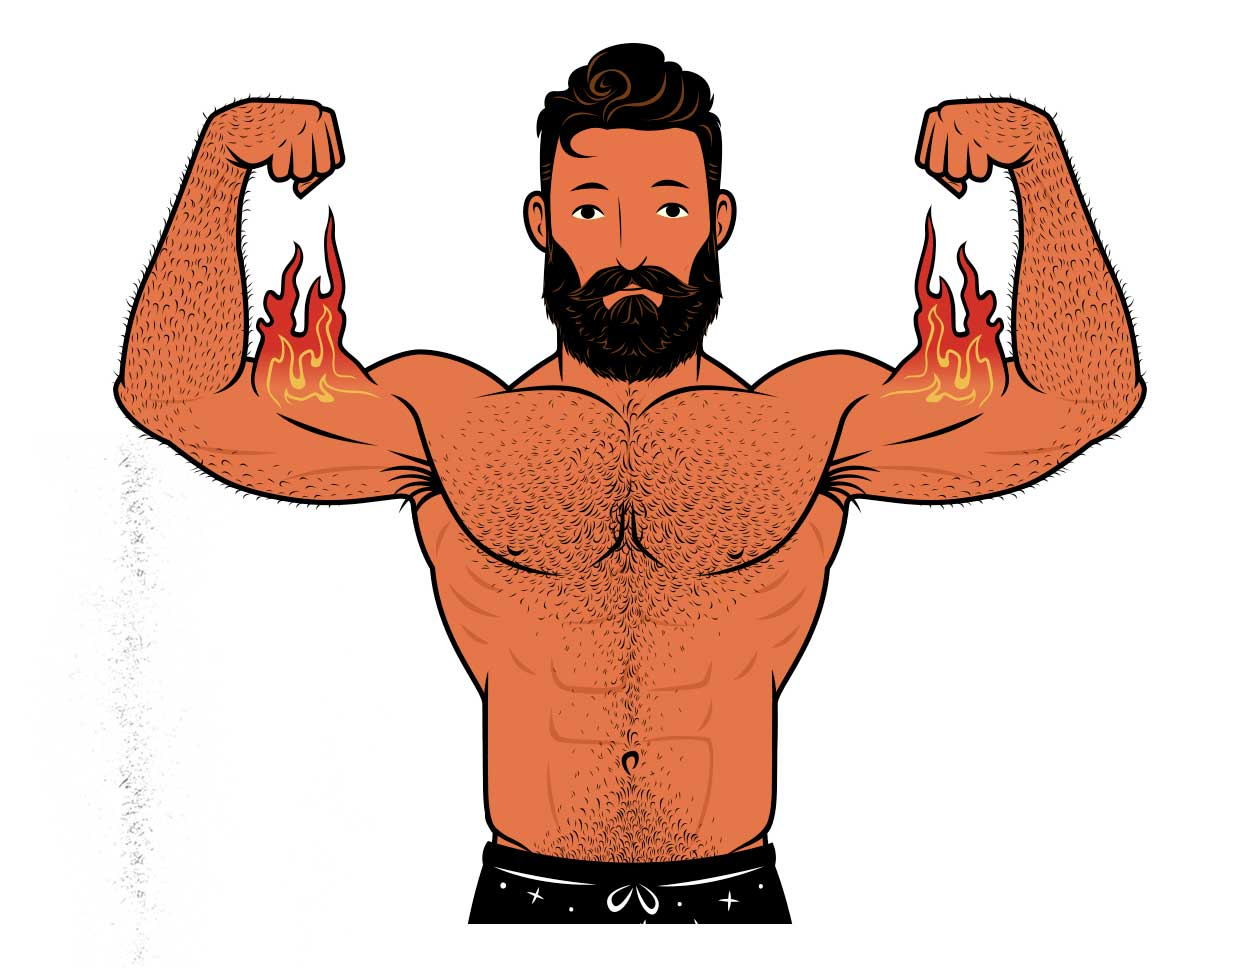 Illustration of a bodybuilder building muscle with 4-day workout routines.